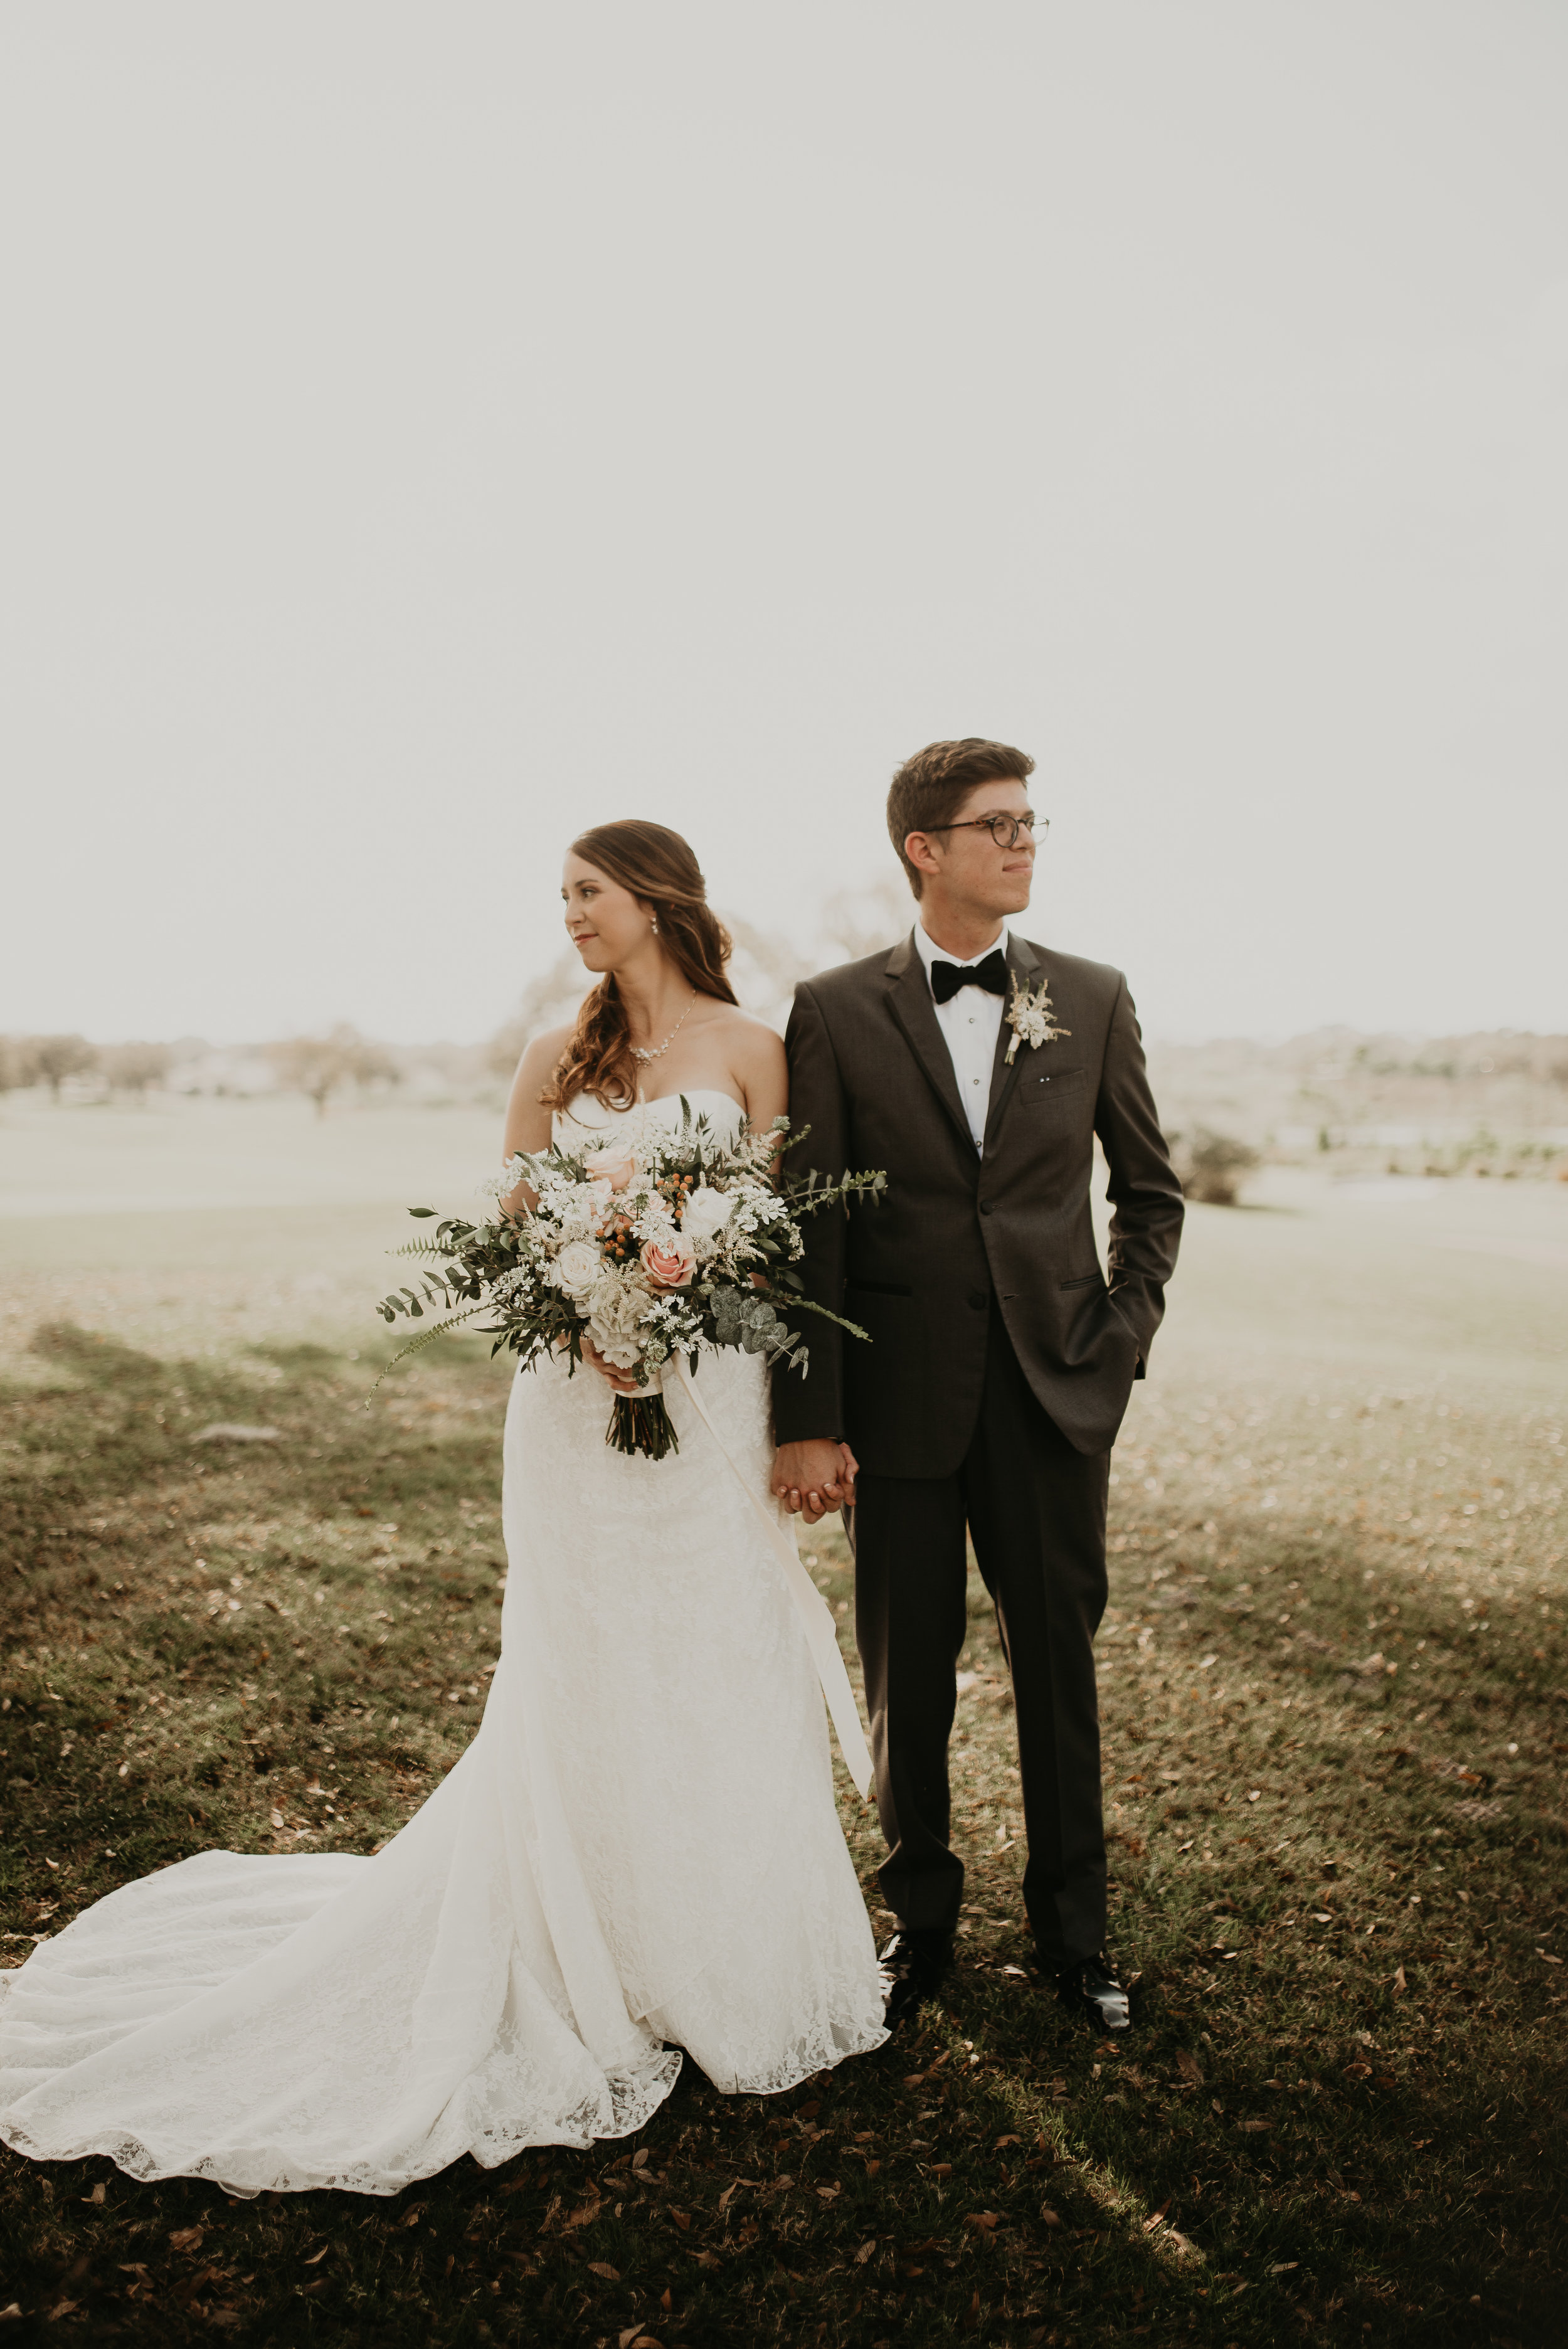 Bride and groom portrait with large wildflower bouquet